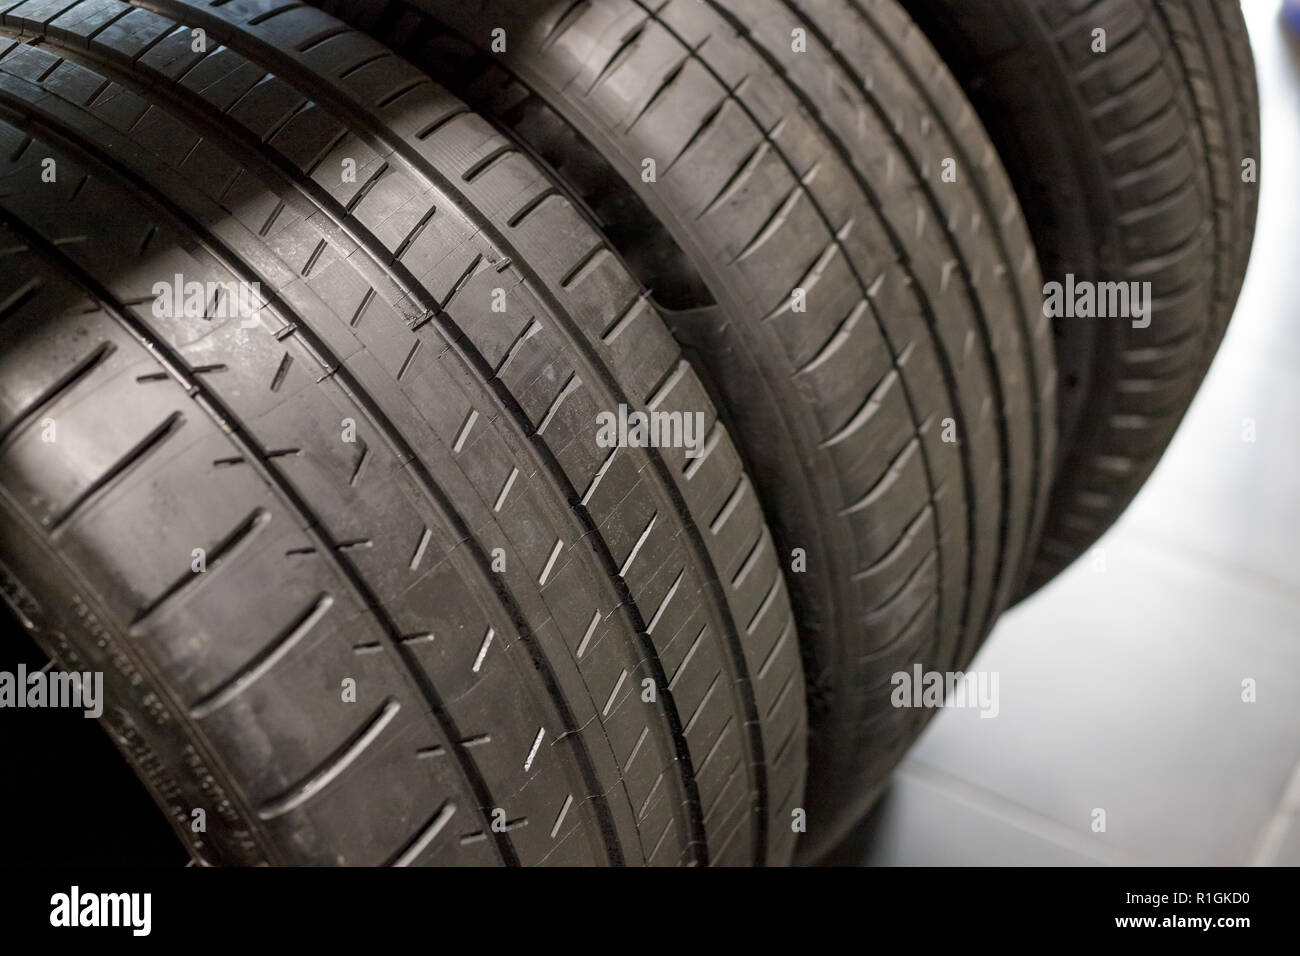 Tires for sale at a tire store and Stacks of old used tires and new one.all season car tires.Selective focus.Car service. all season car tires Stock Photo